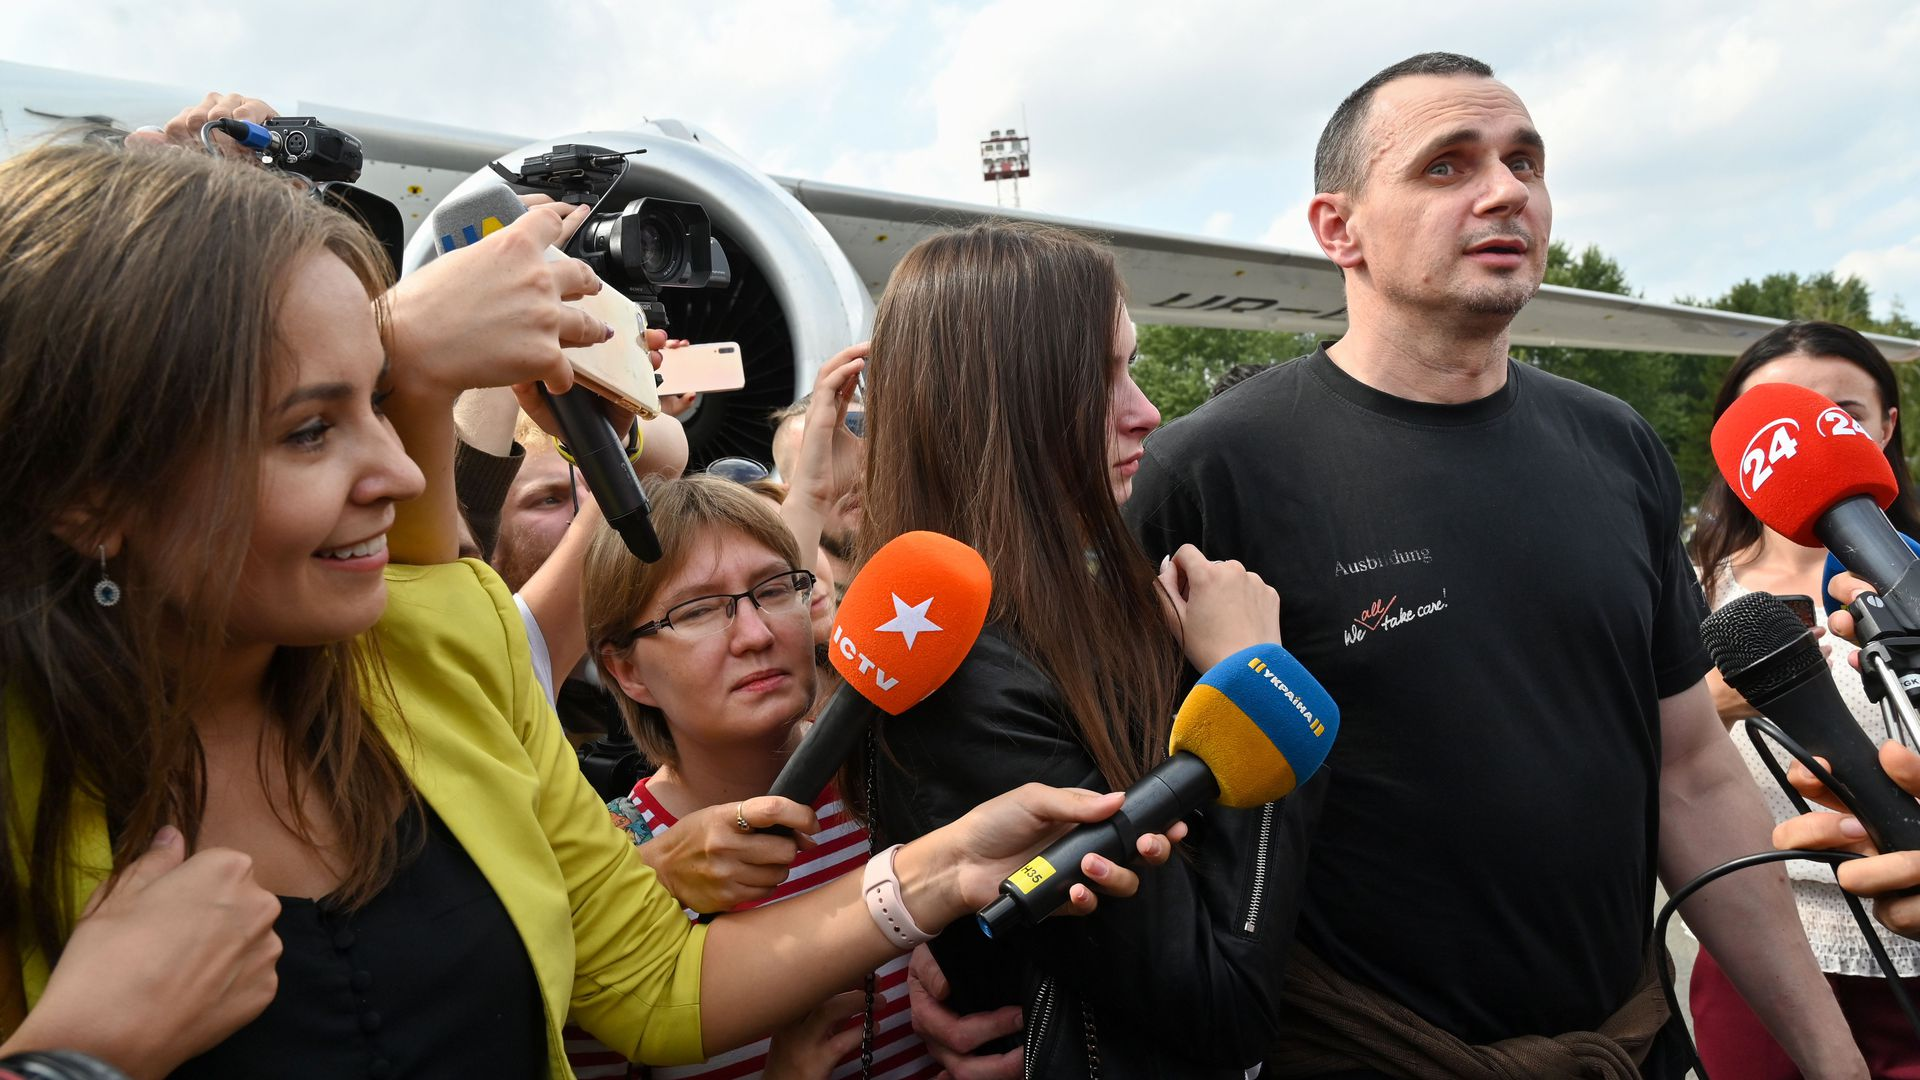 Ukrainian filmmaker and activist Oleg Sentsov chats with reporters after being released from Russia